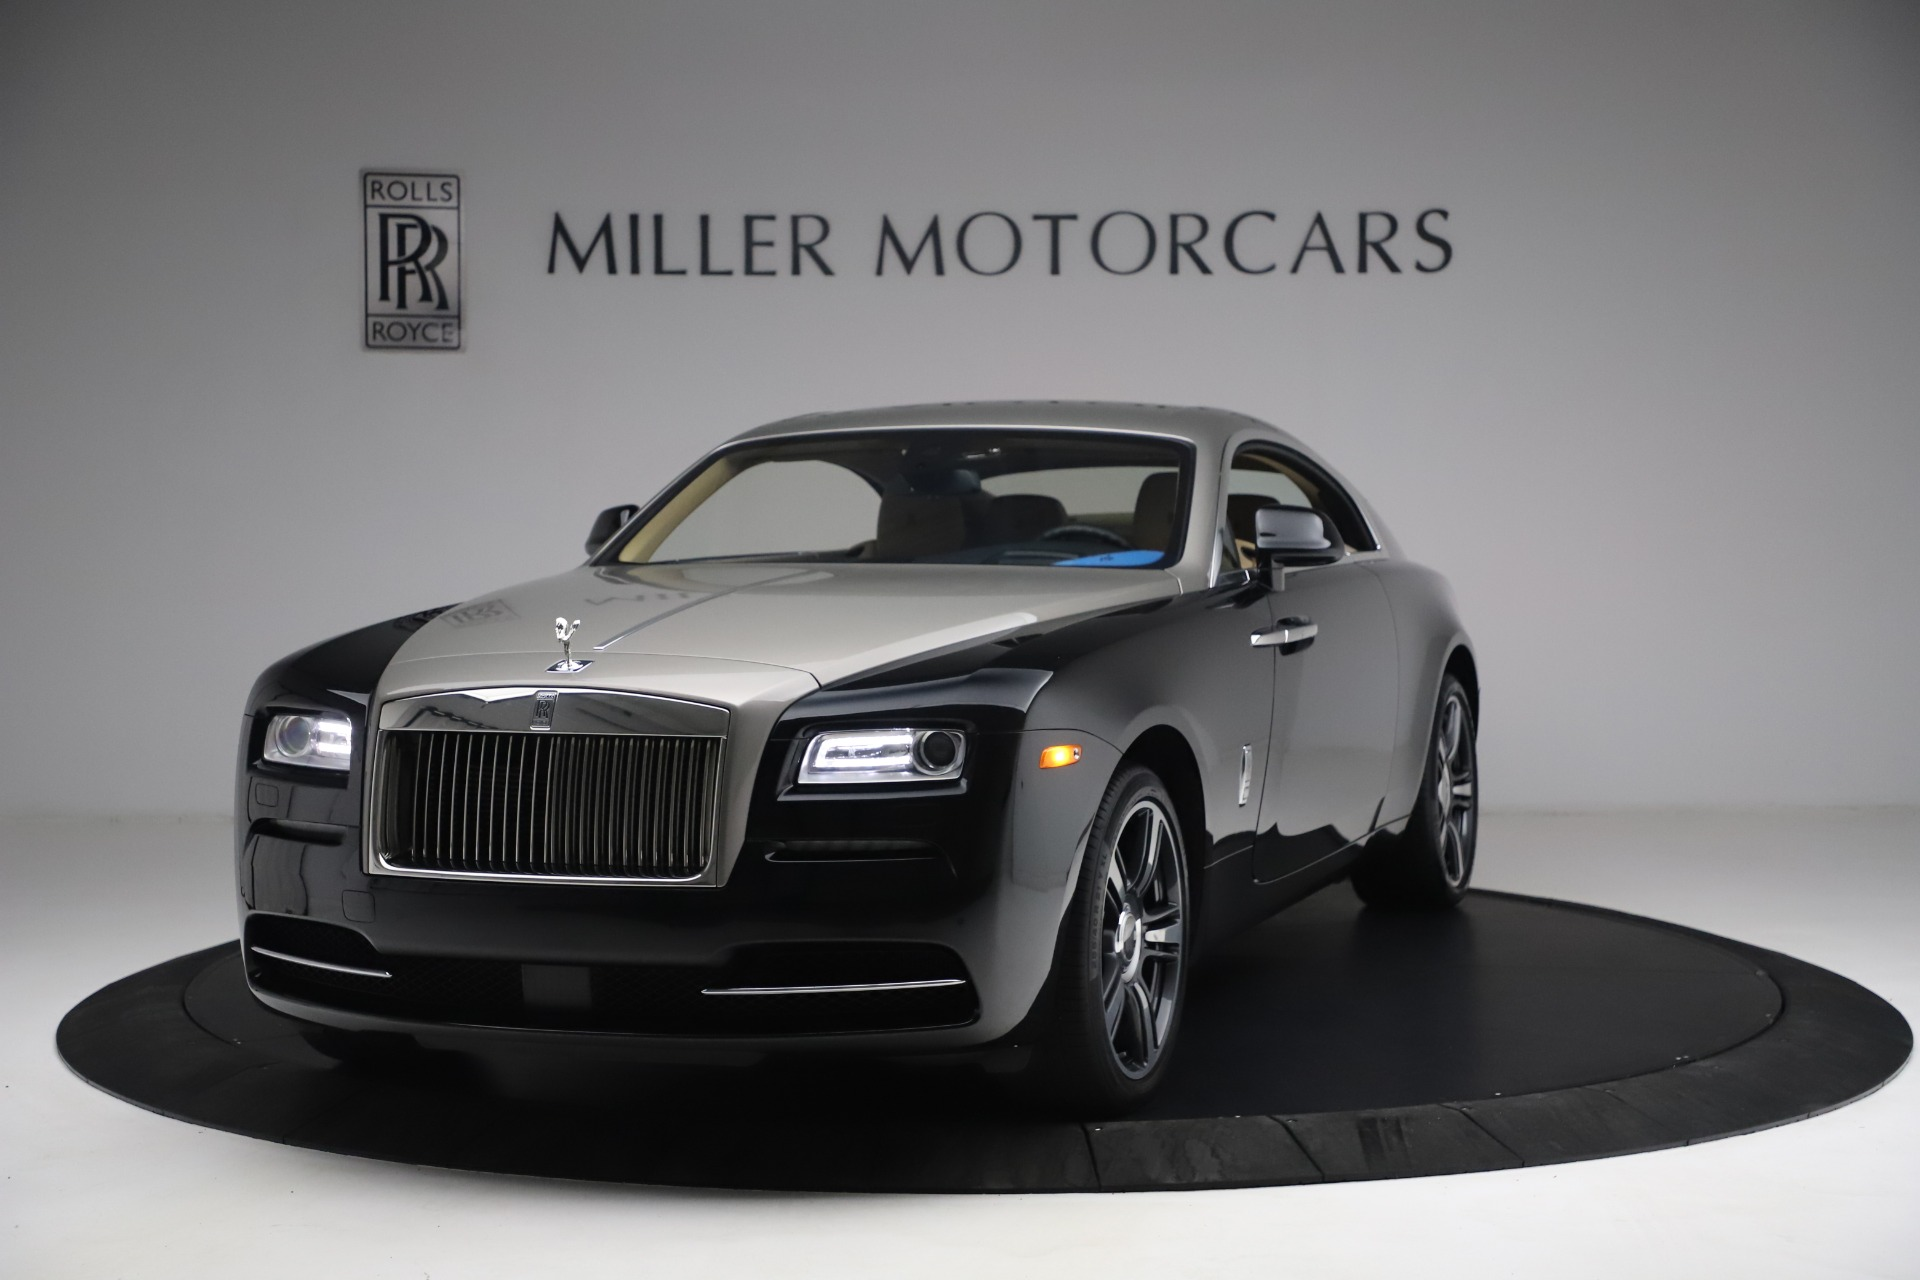 Used 2015 Rolls-Royce Wraith for sale $199,900 at Bentley Greenwich in Greenwich CT 06830 1